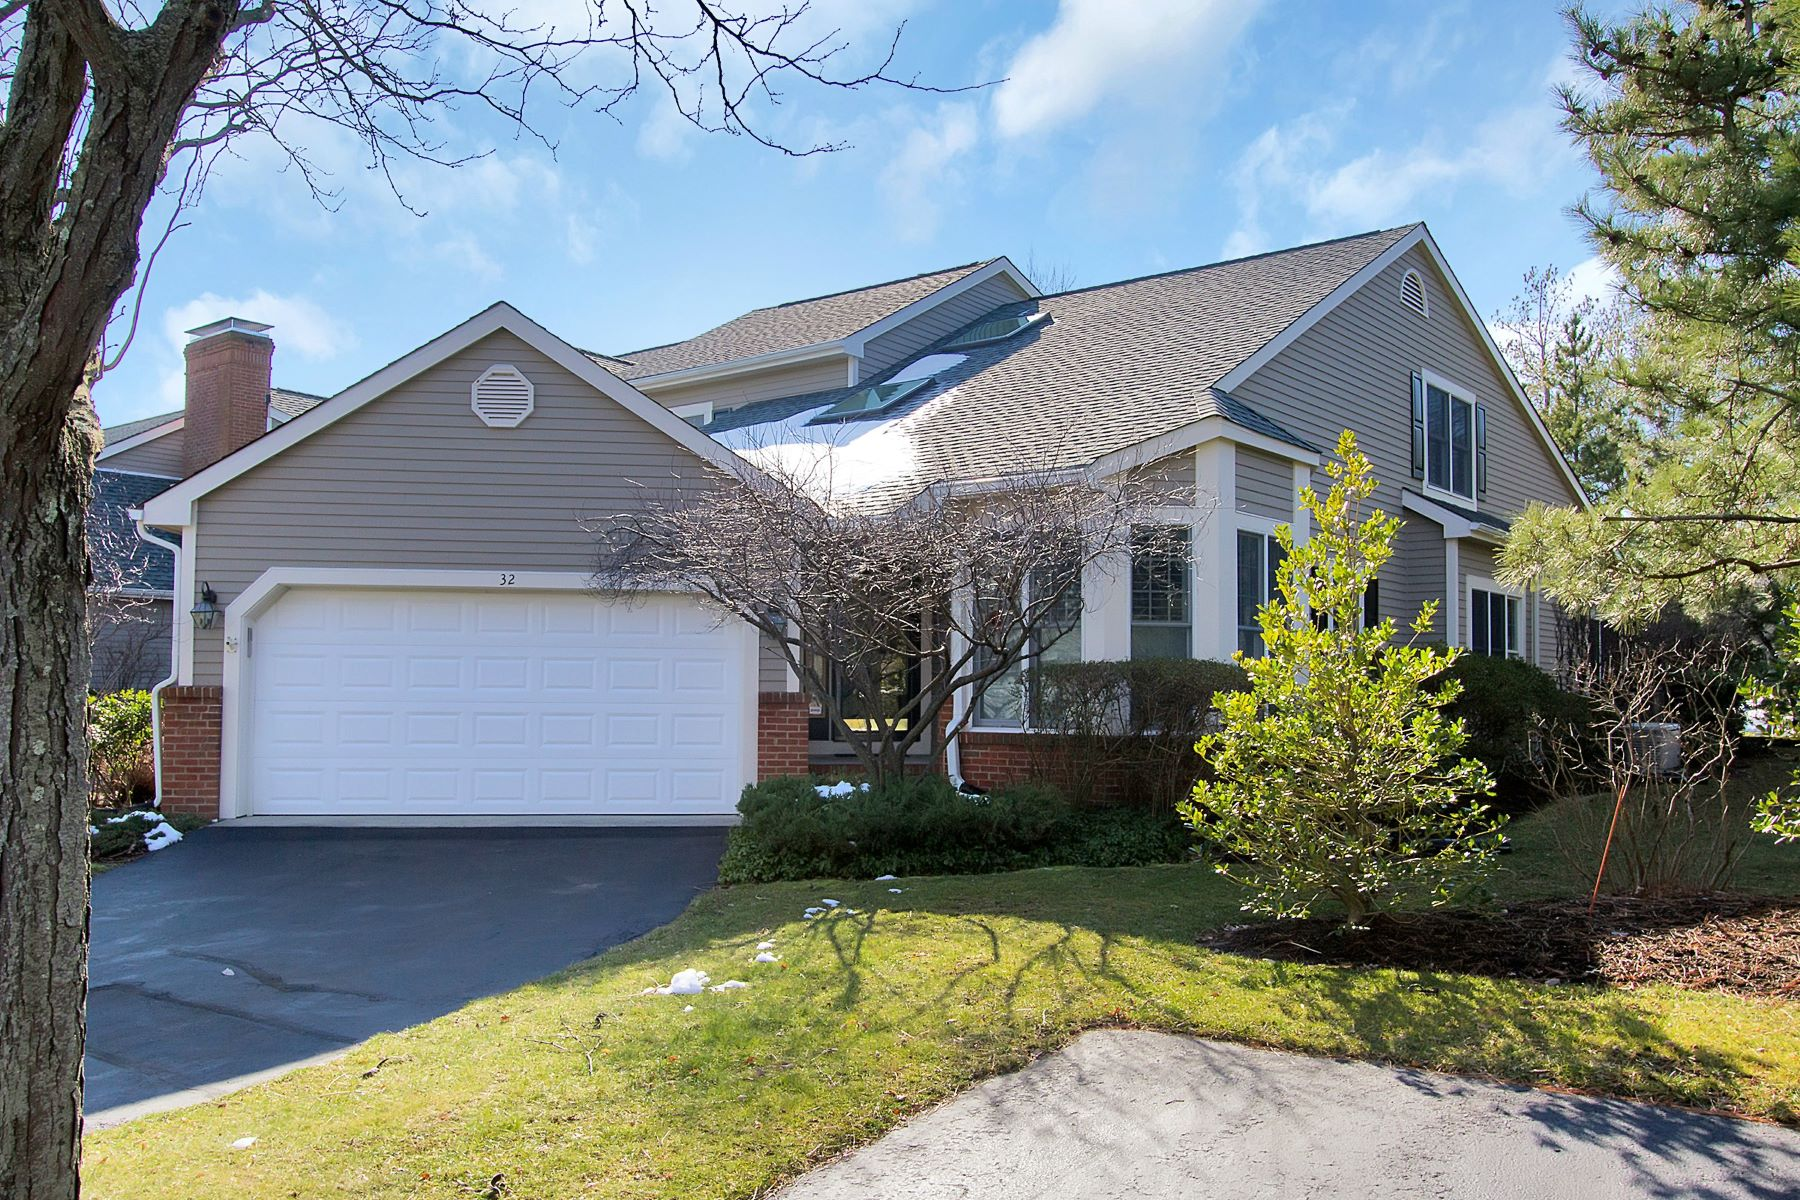 Condominium for Sale at Alderbrook 32 Peach Tree Lane Little Silver, New Jersey, 07739 United States